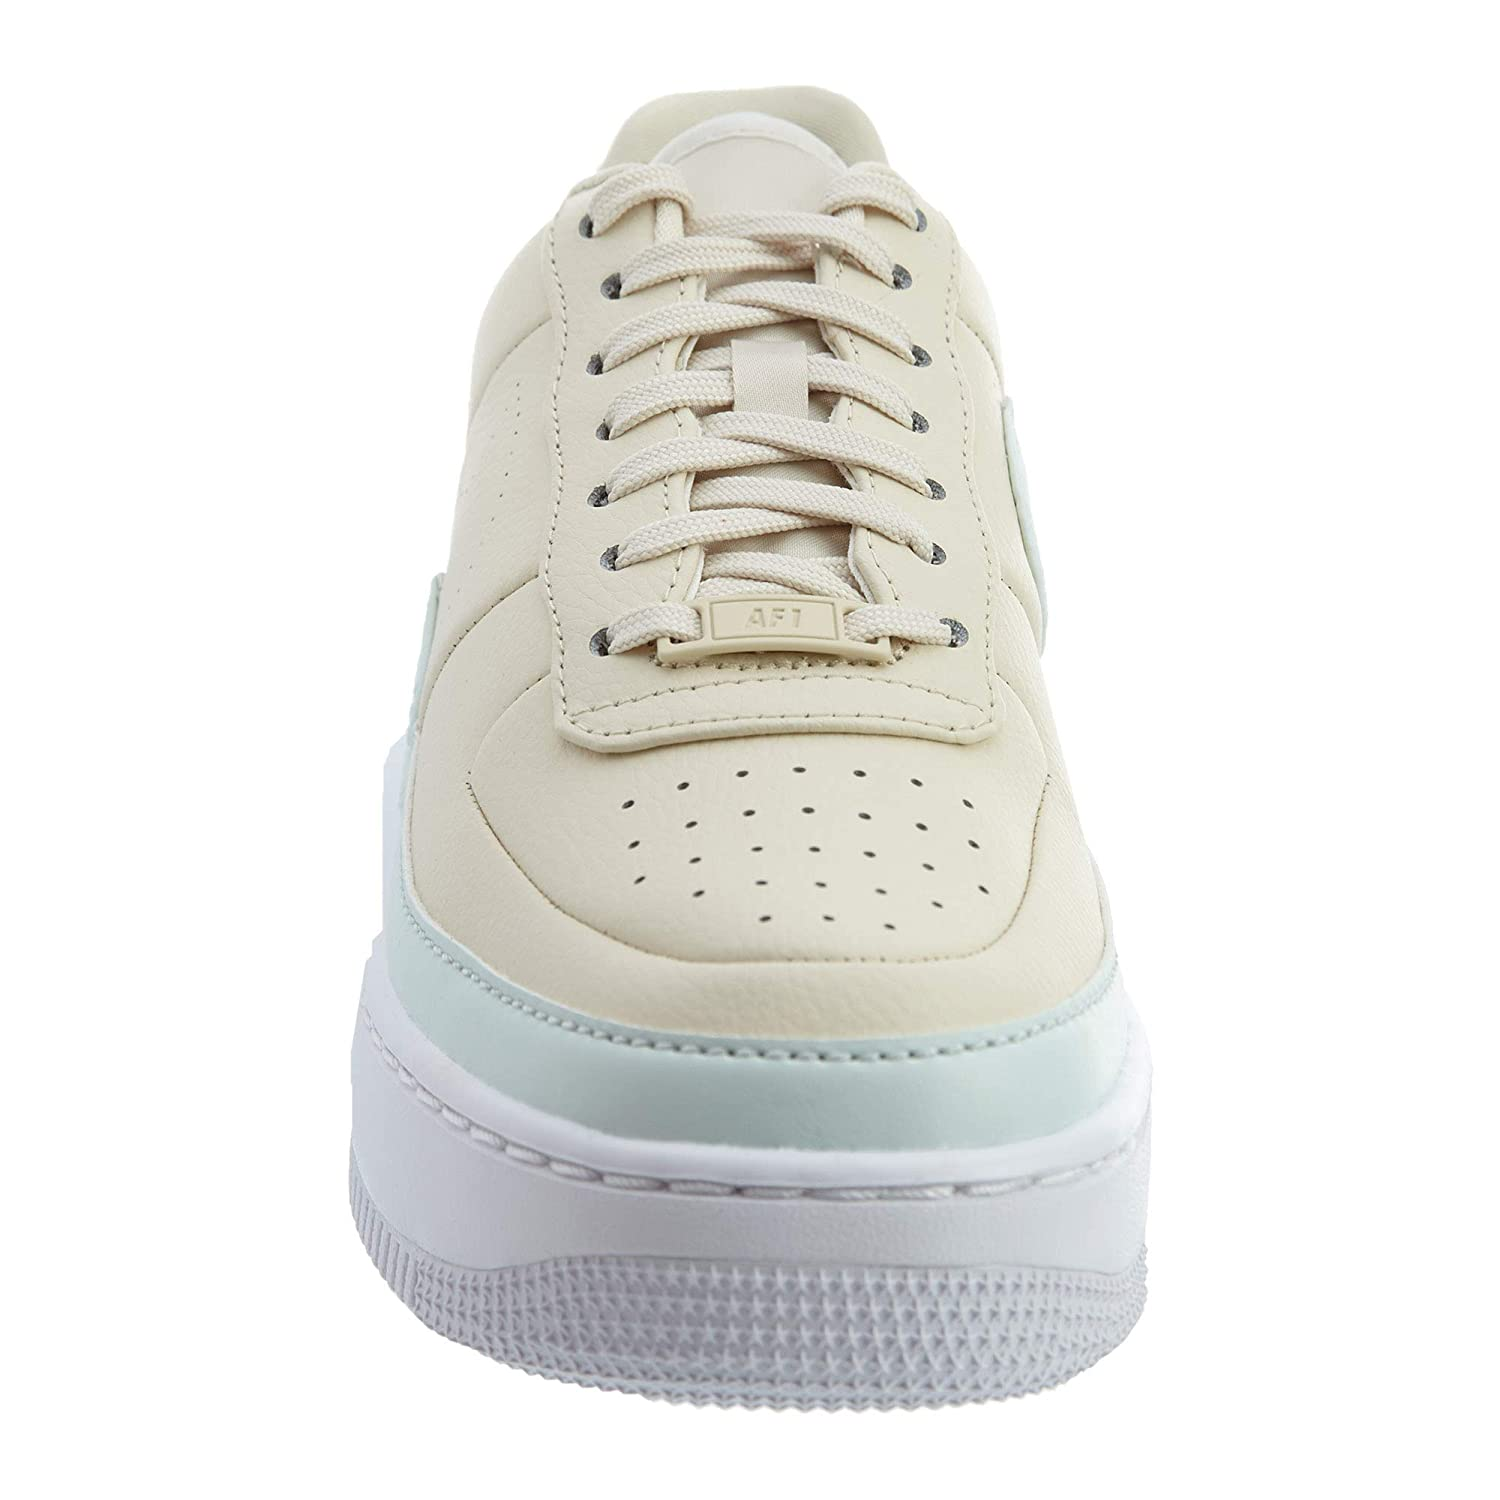 sneakers for cheap 937f1 17a0d Nike W Af1 Jester XX, Scarpe da Basket Donna: Amazon.it: Scarpe e borse